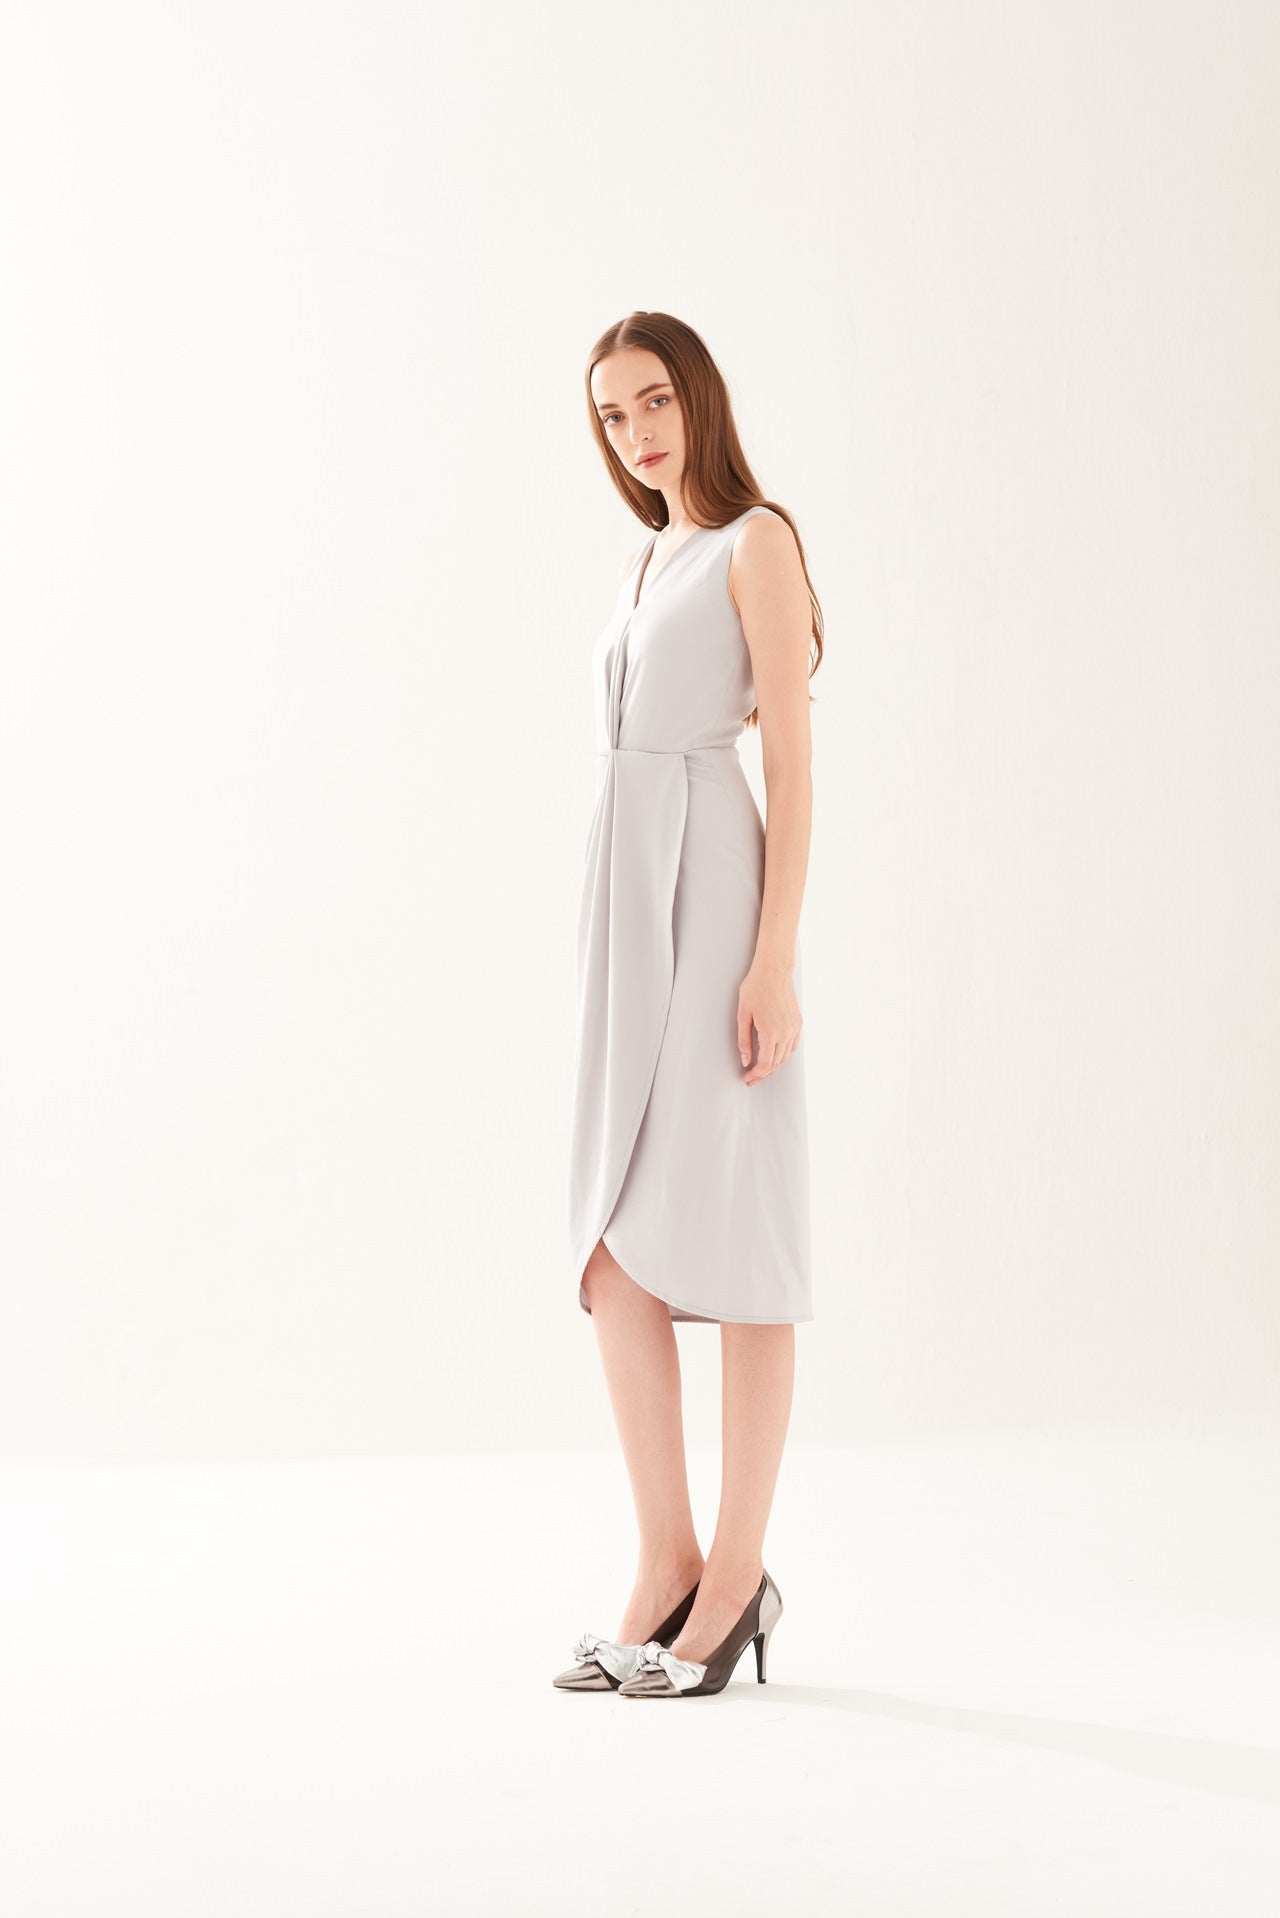 ZS021703DGY : DRAPED DRESS